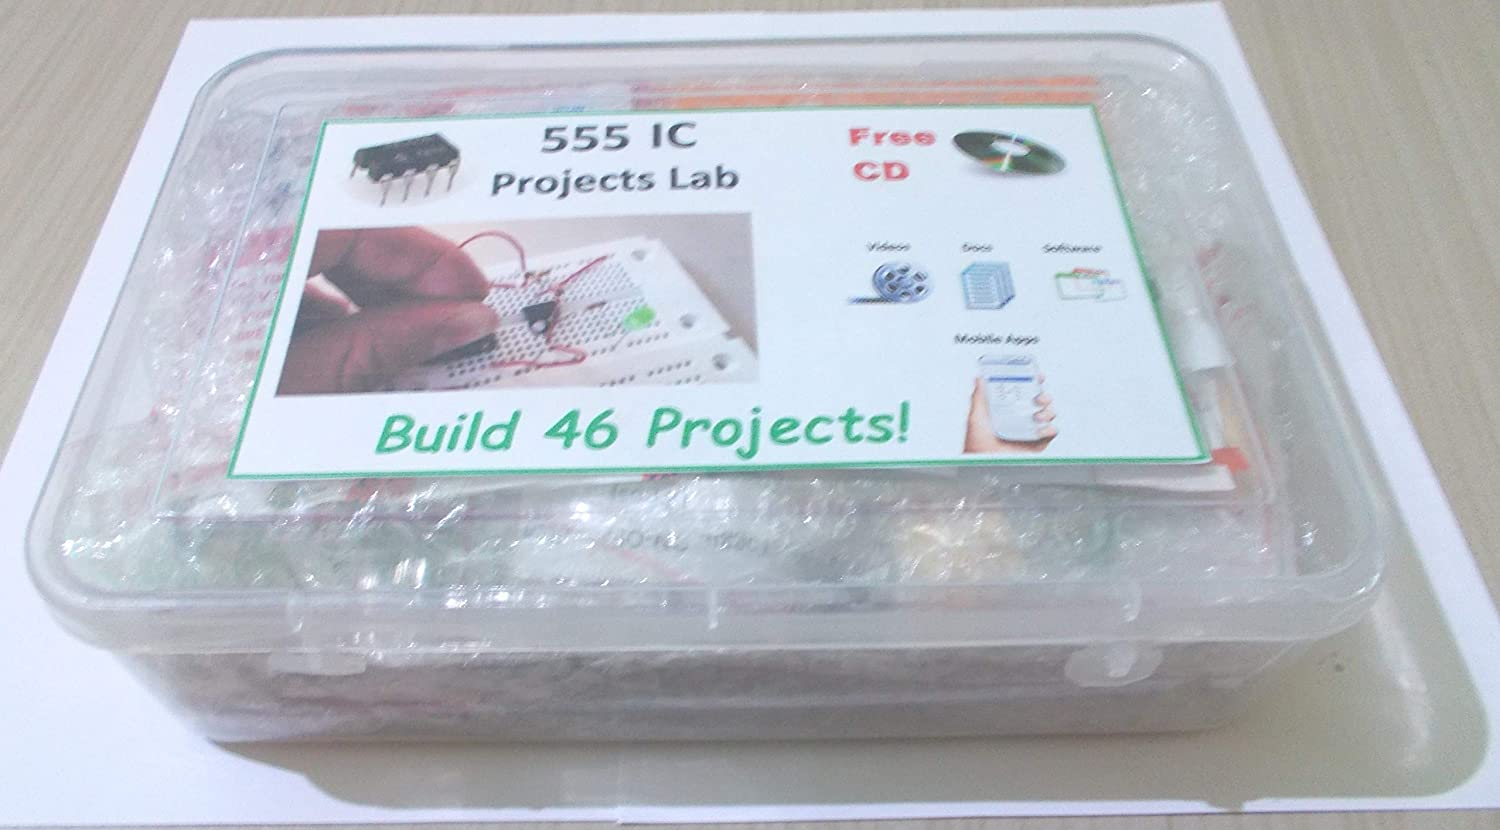 555 Timer Ic Projects Lab 46 Electronic Hobby School College Rain Alarm Project And Circuit Diagram Using Academic Epk040 Industrial Scientific